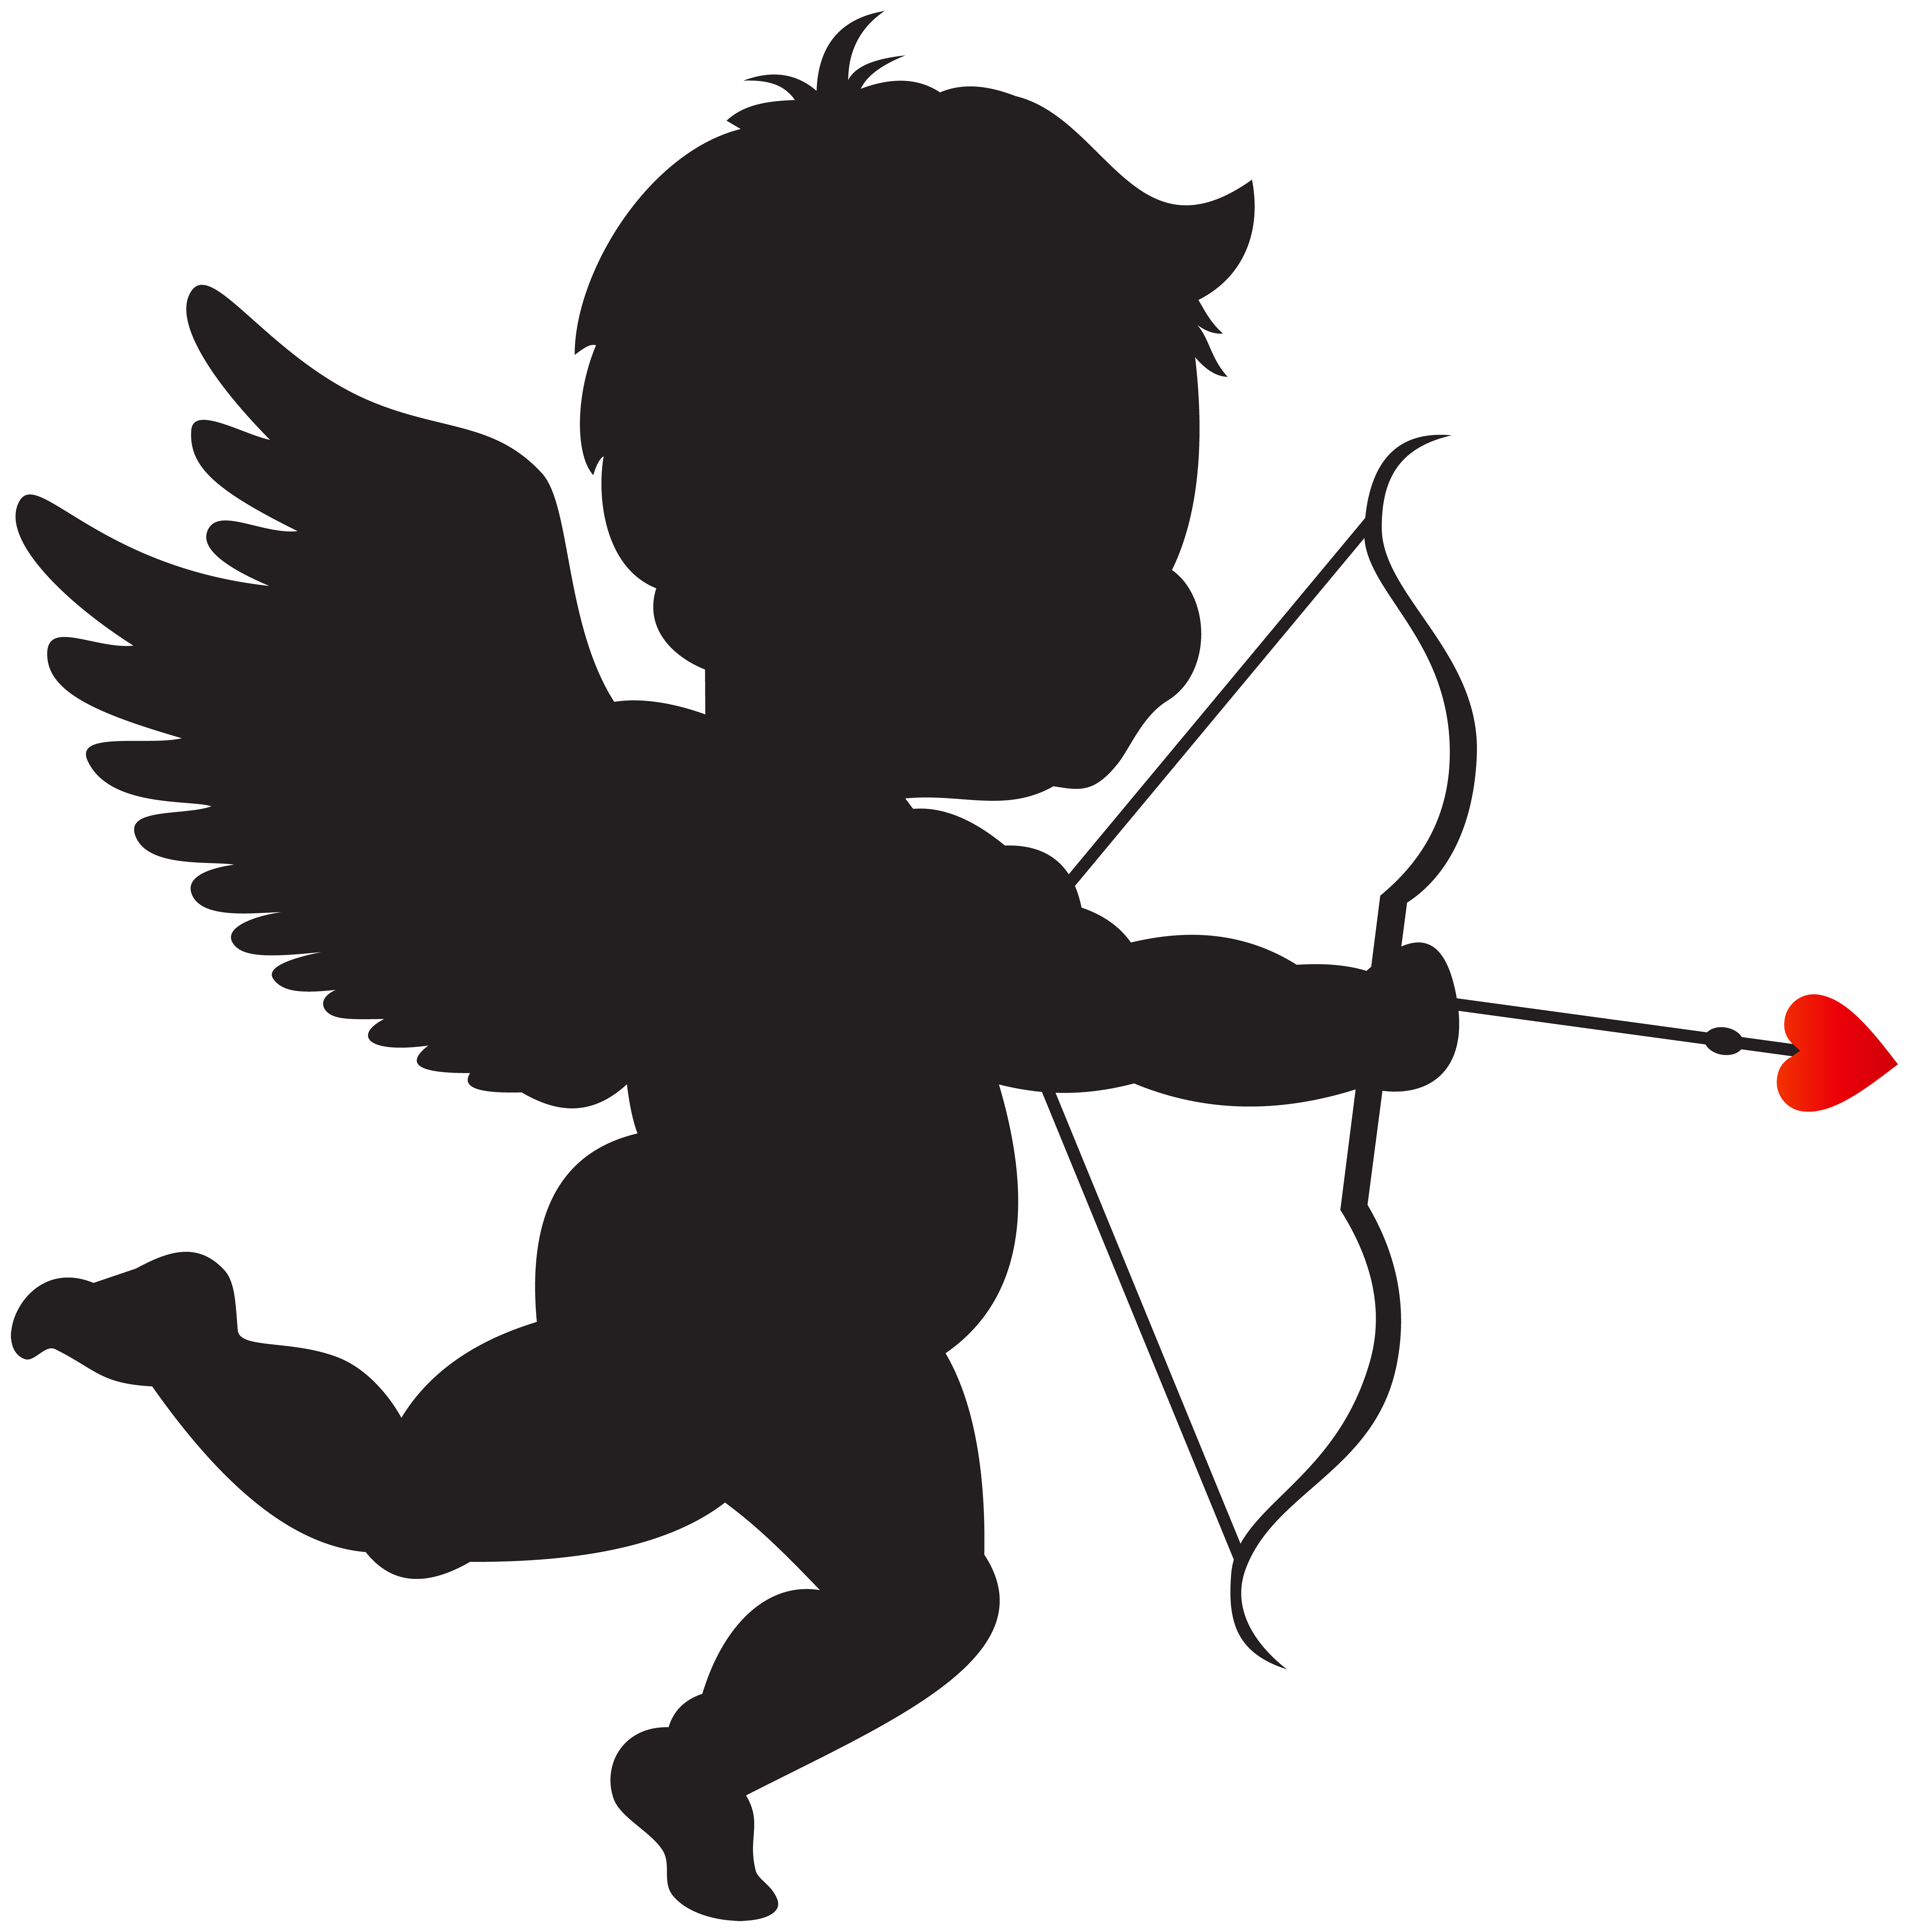 graphic freeuse download Cupid clipart. With bow silhouette png